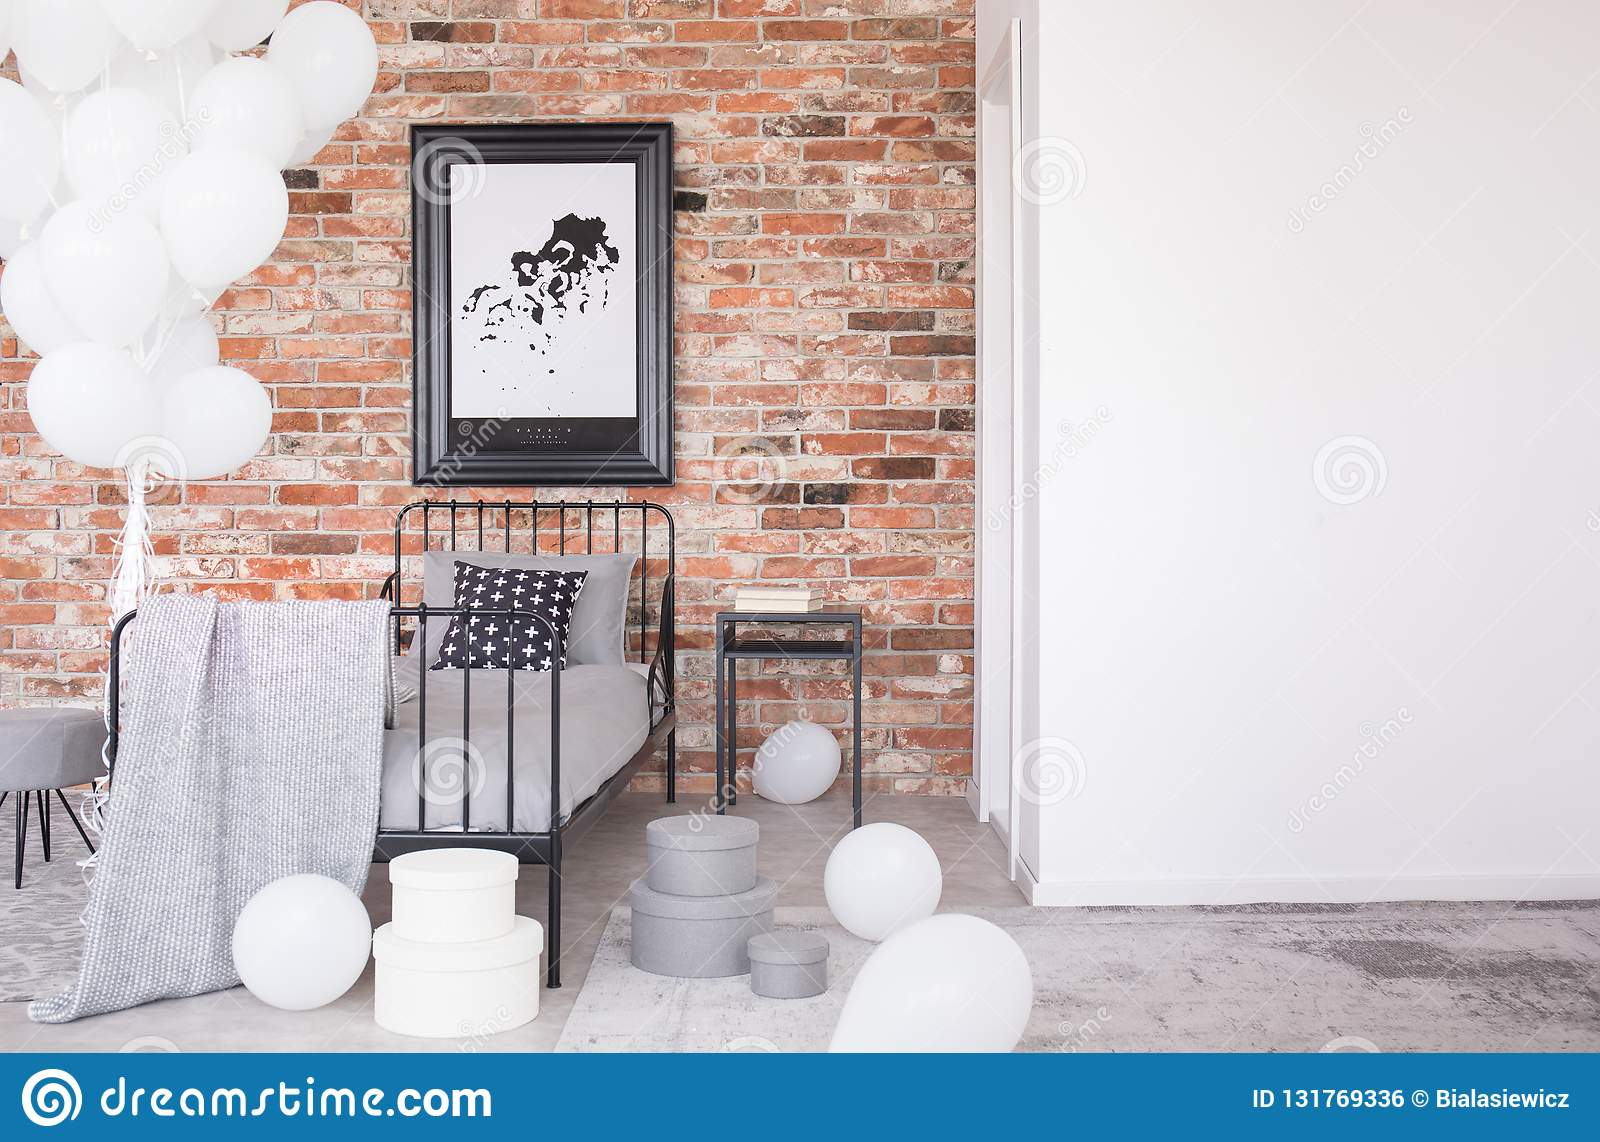 Poster on red brick wall above bed in interior with copy space and balloons. Real photo